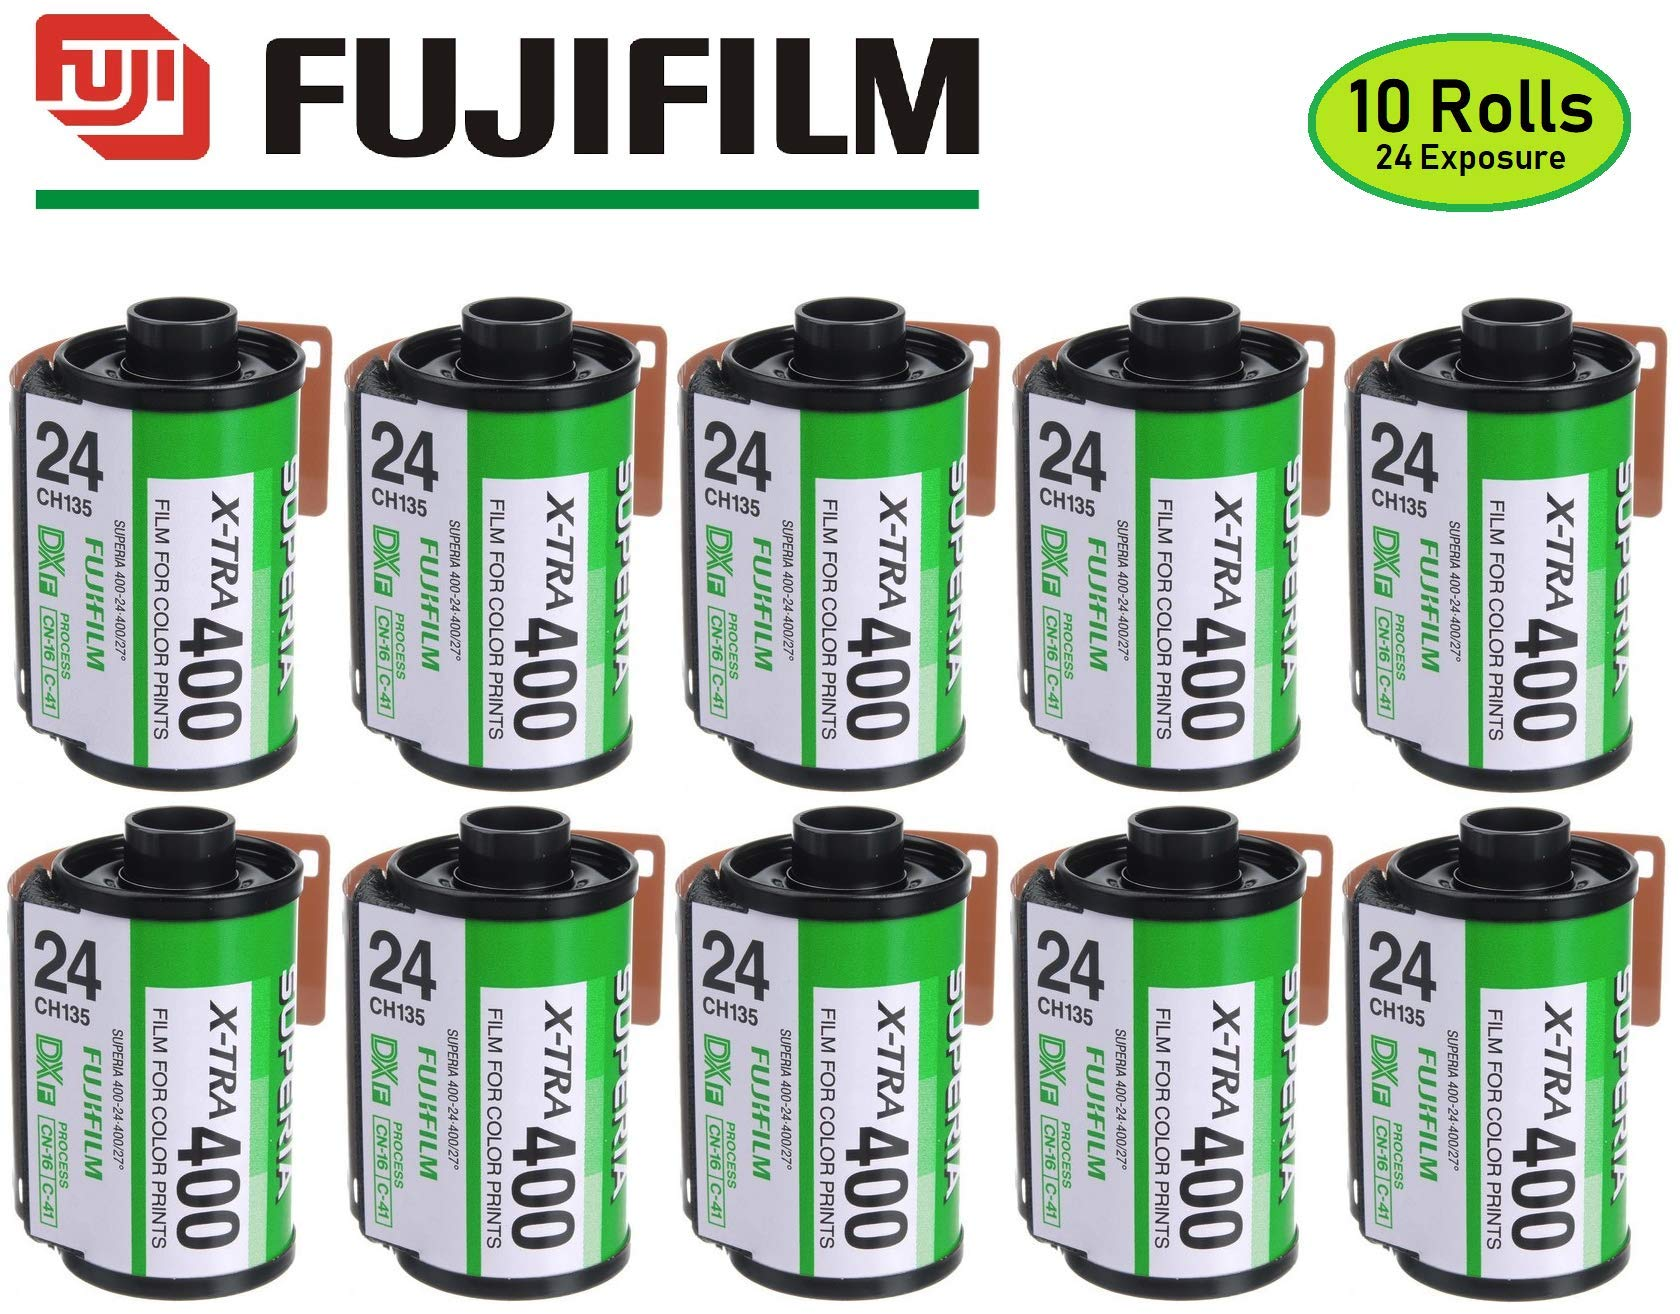 Fujifilm Fujicolor Superia X-TRA 400 35mm Film 24 Exposure - 10 Pack (Discontinued by Manufacturer)